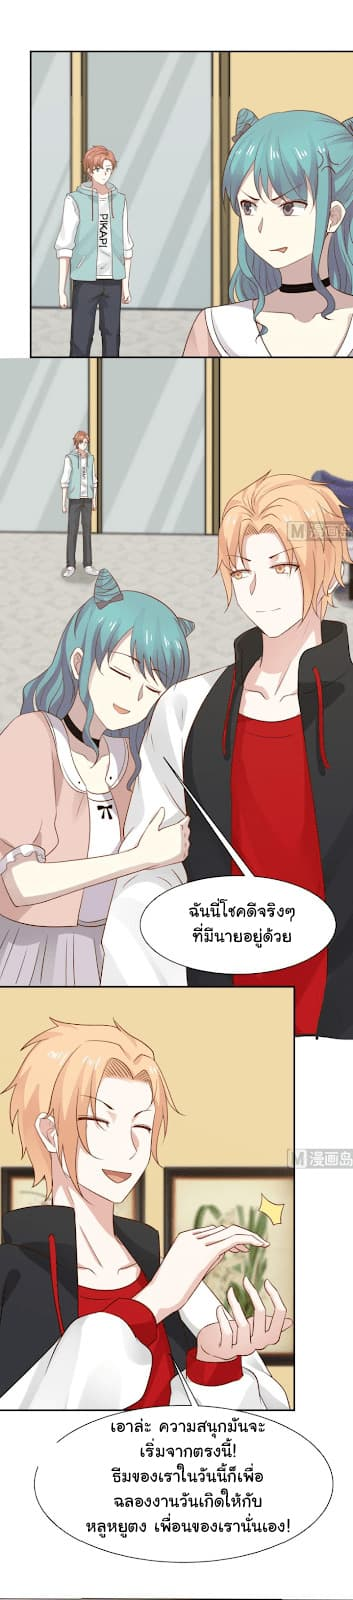 I Have a Dragon on My Body - หน้า 10